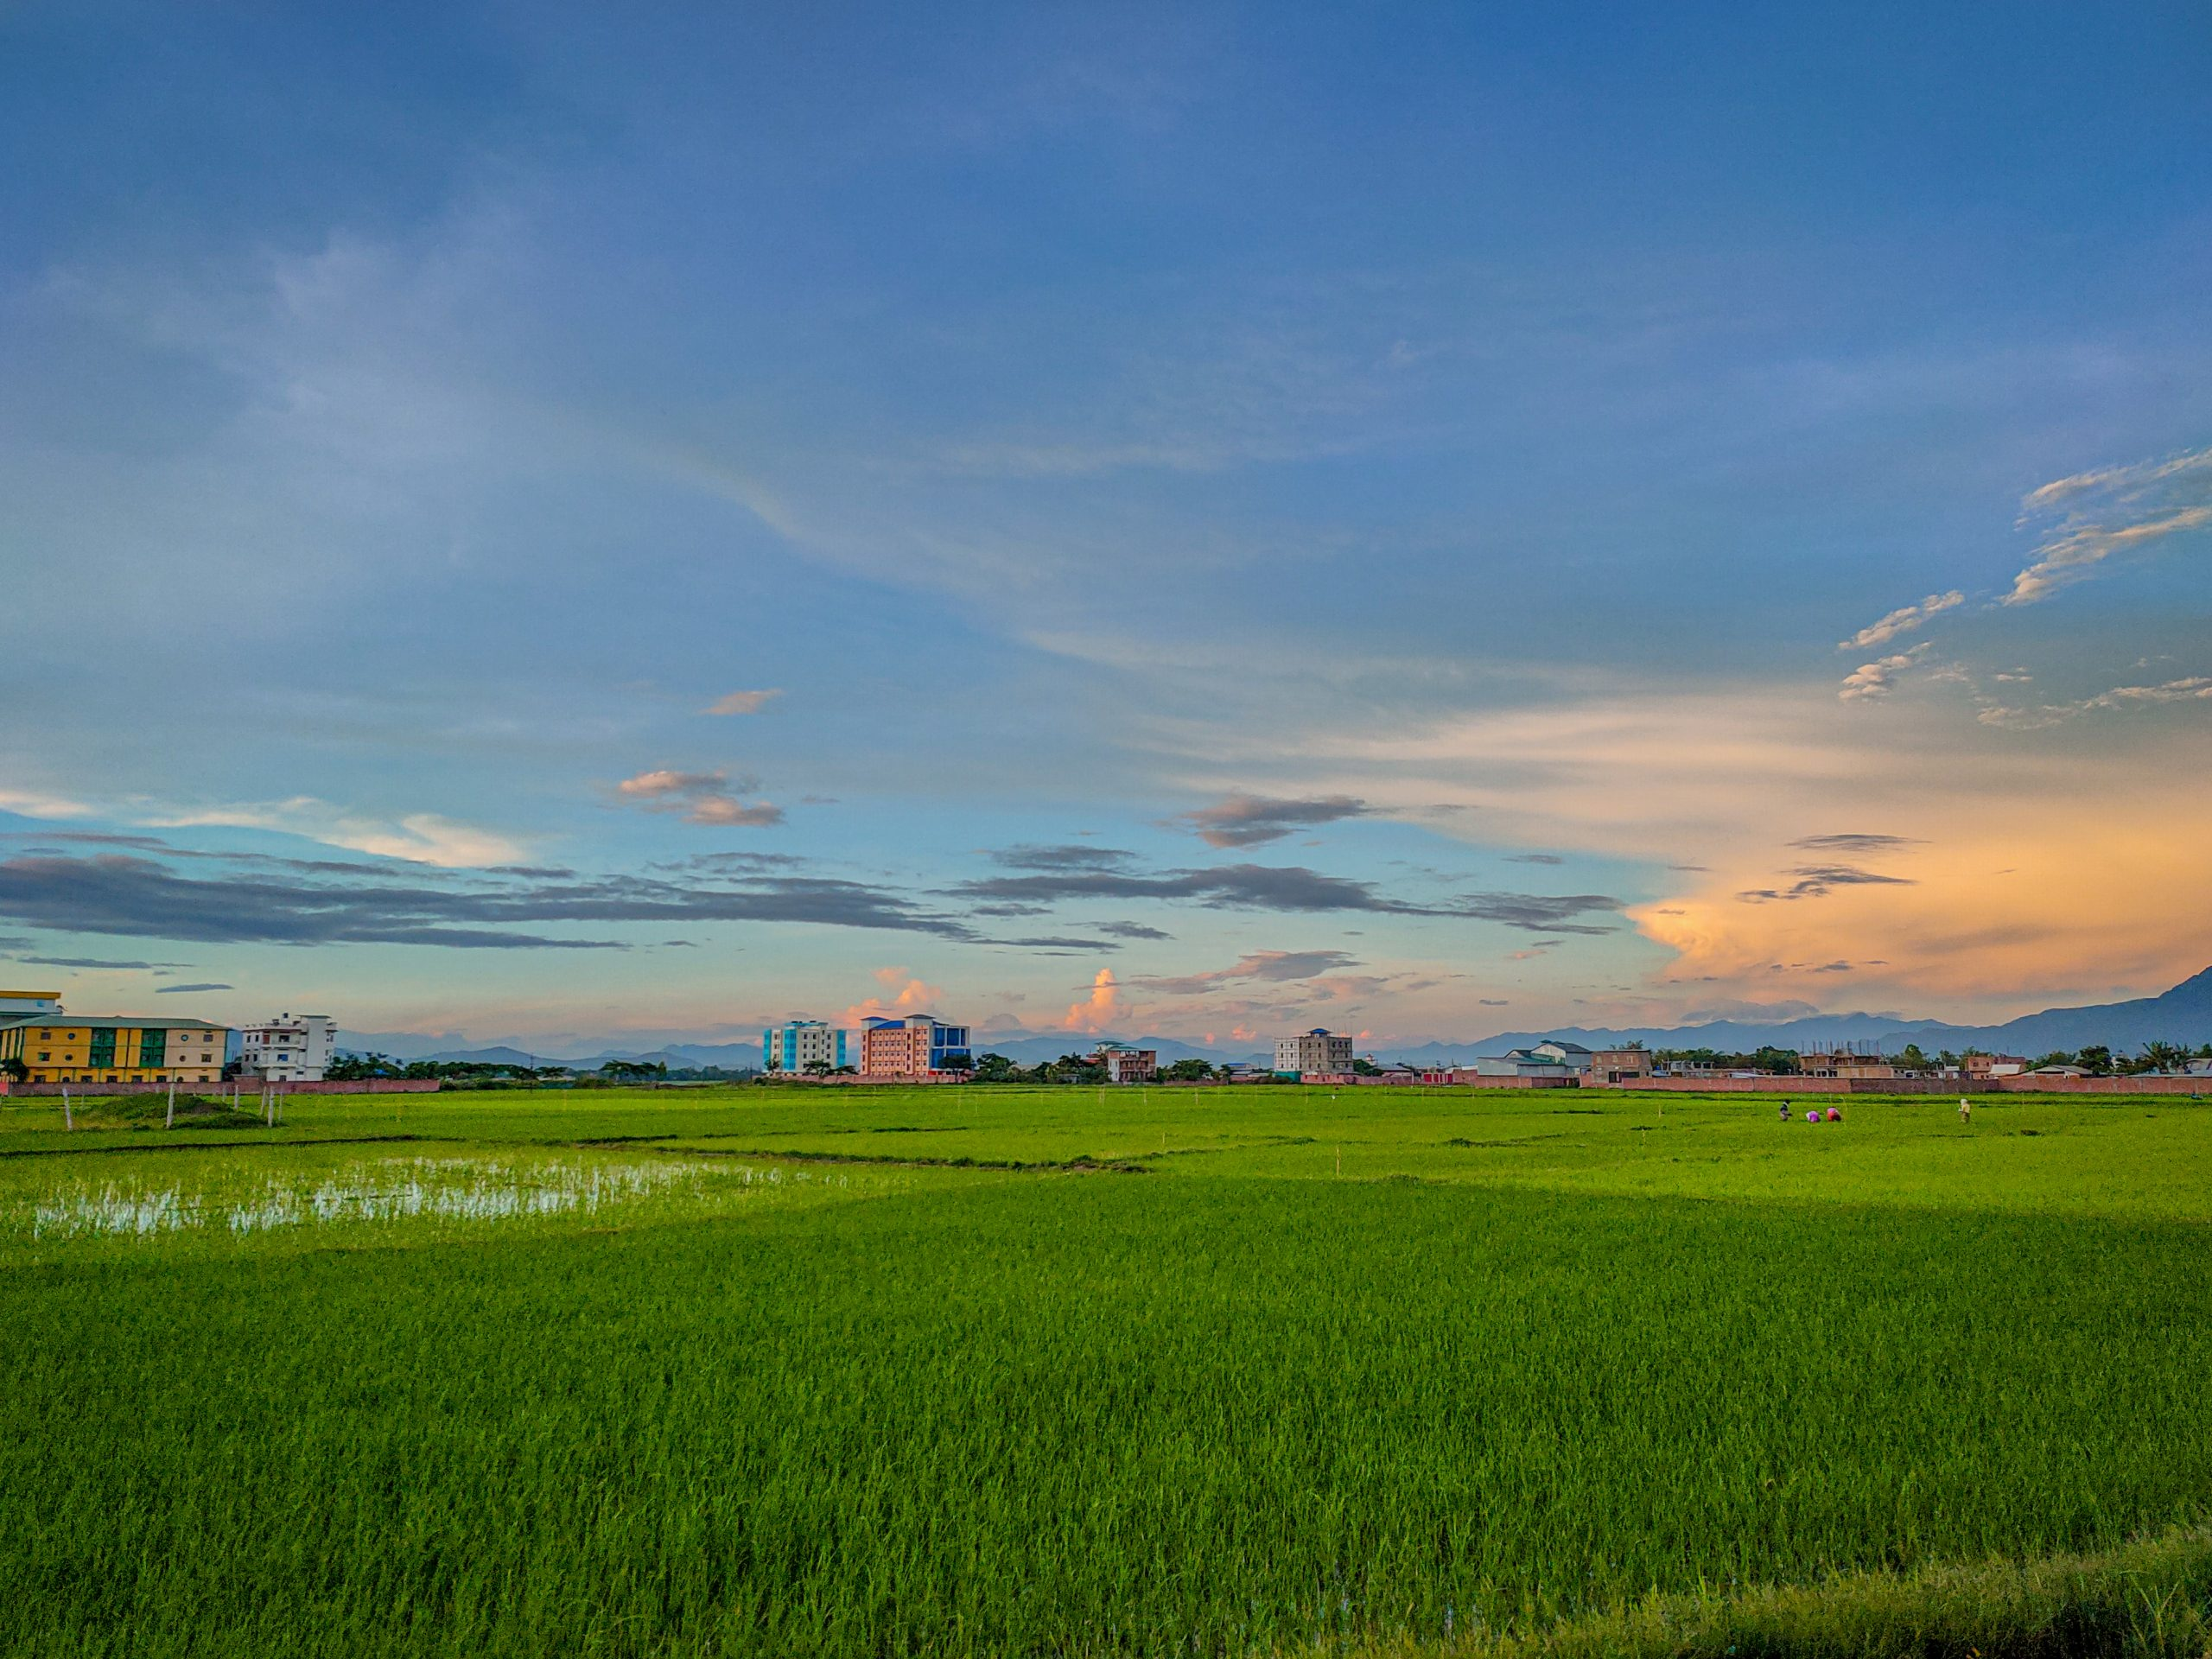 Landscape of farm